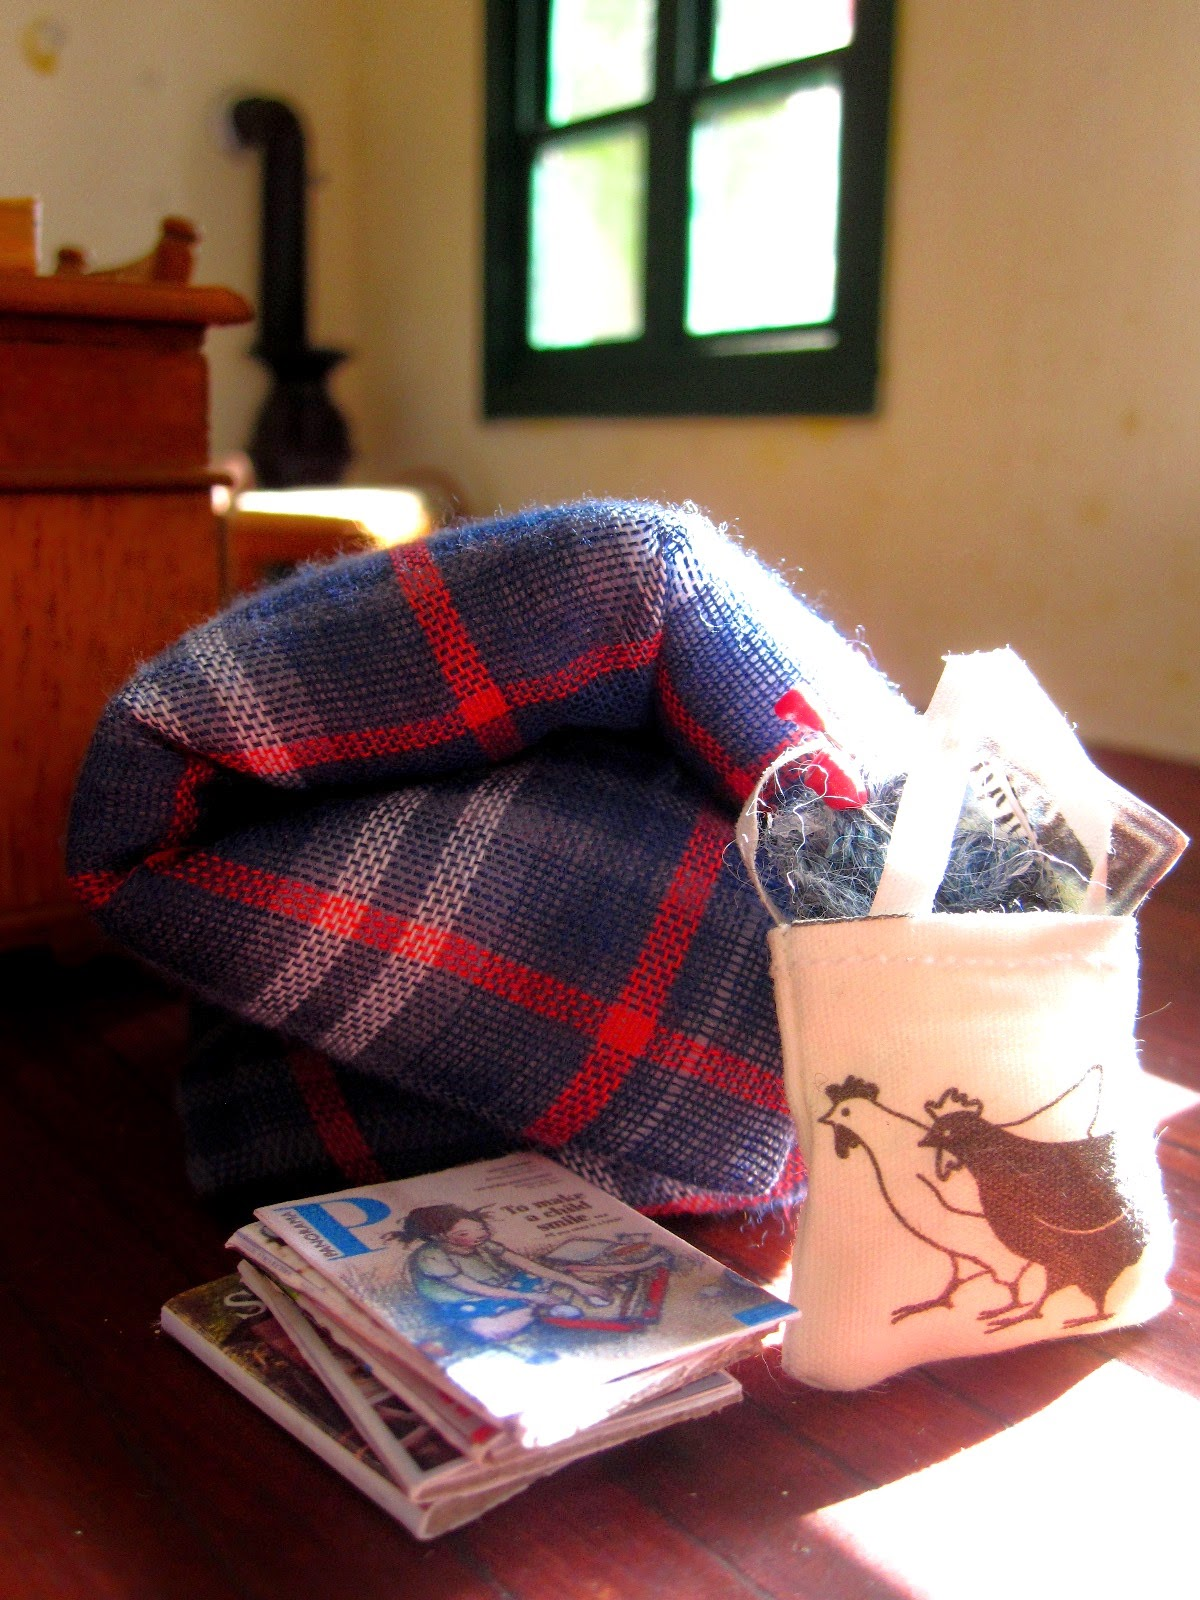 Inside of a miniature holiday house, showing a doona rolled up on the floor next to a pile of magazines and a bag of knitting.